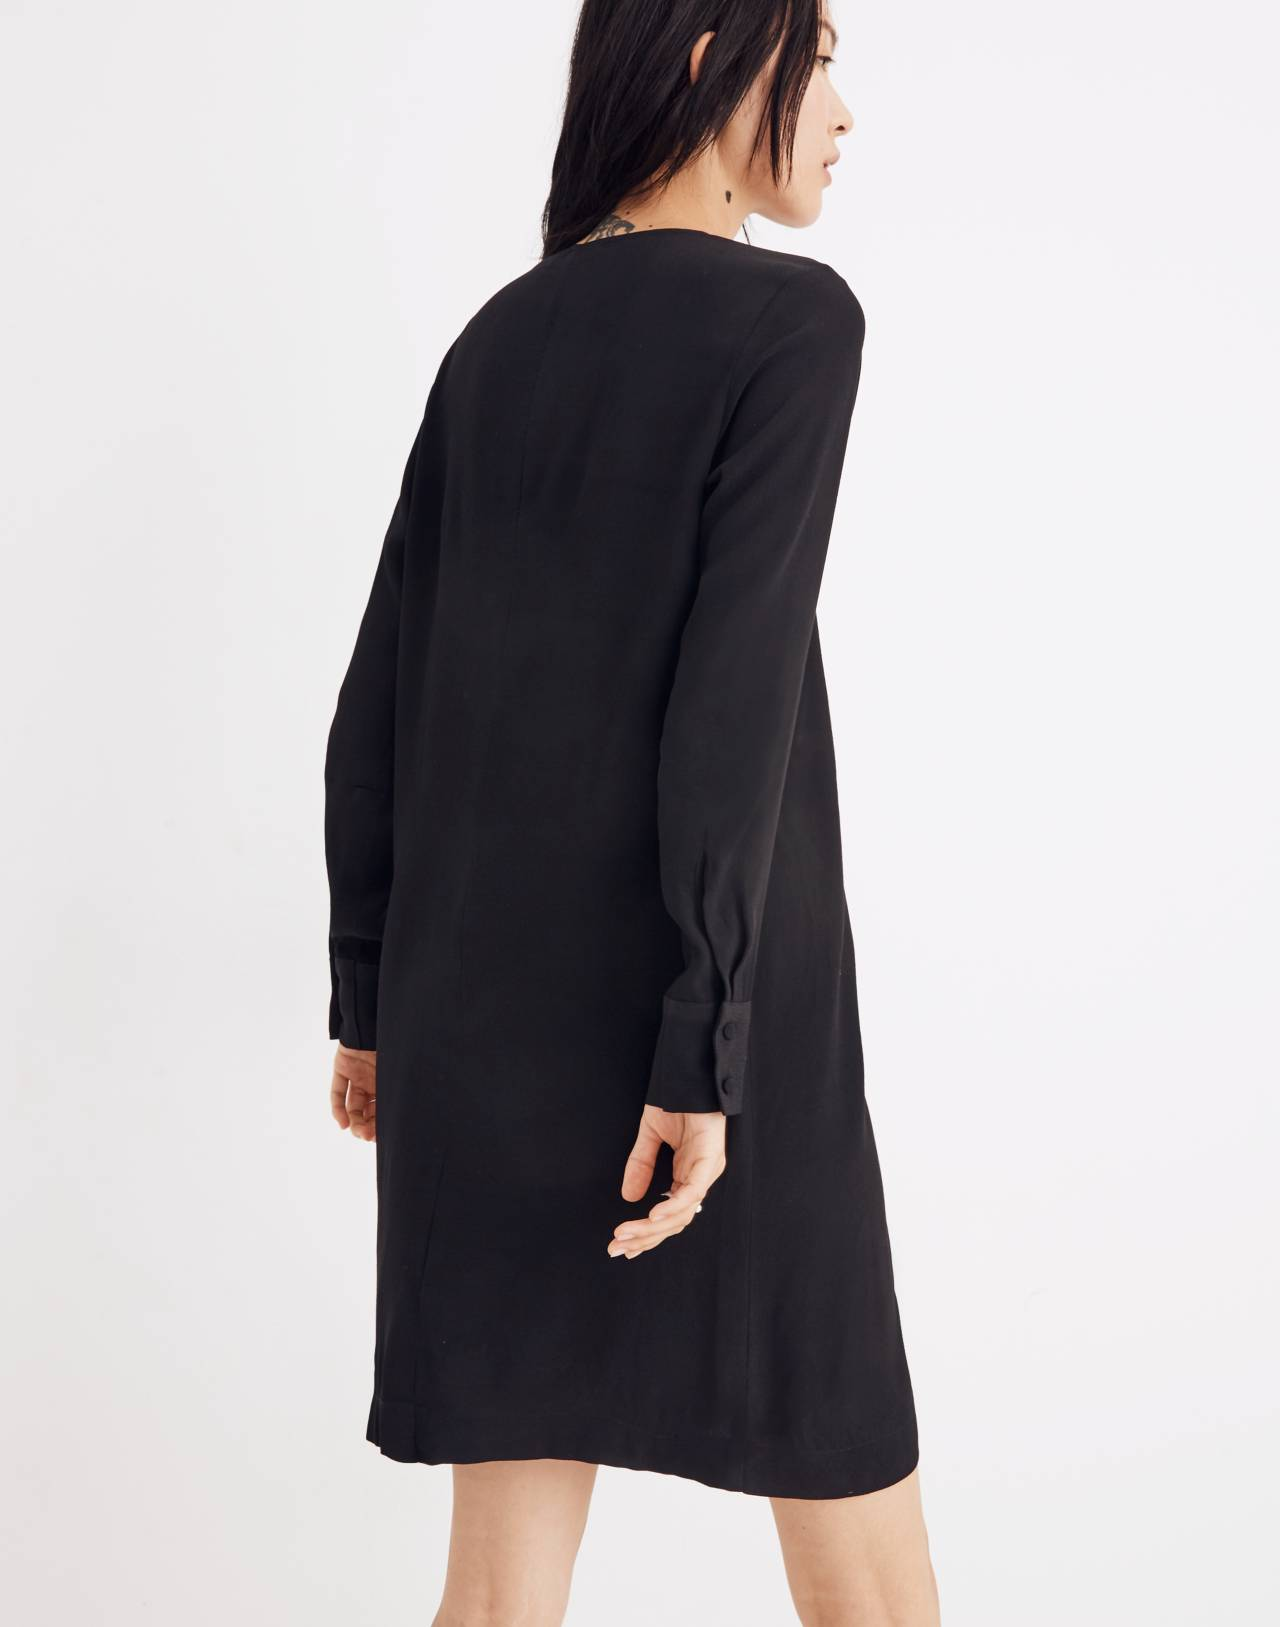 Heather Long-Sleeve Button-Front Dress in true black image 3